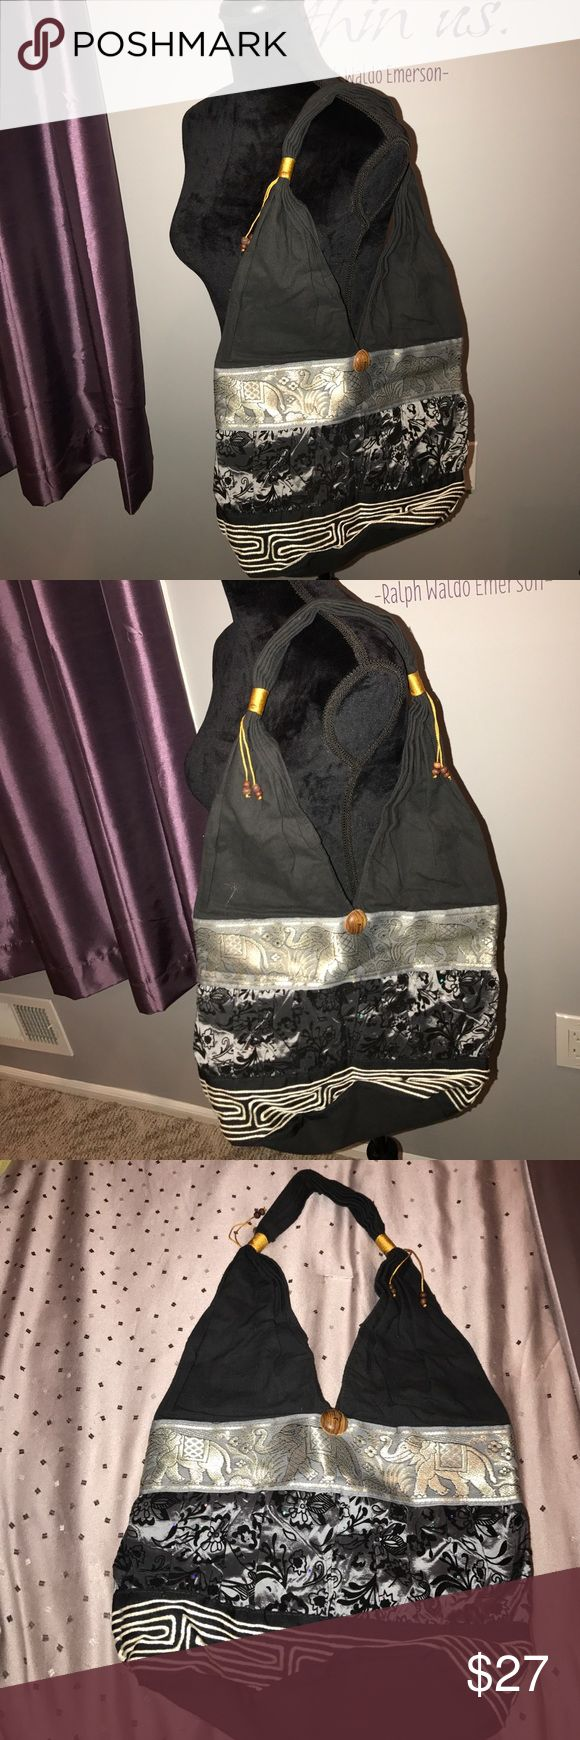 Brand New Black and Silver Shoulder Bag Brand New never used beautiful. I have in Black and Gold also. Same design.... identical. Bags Shoulder Bags